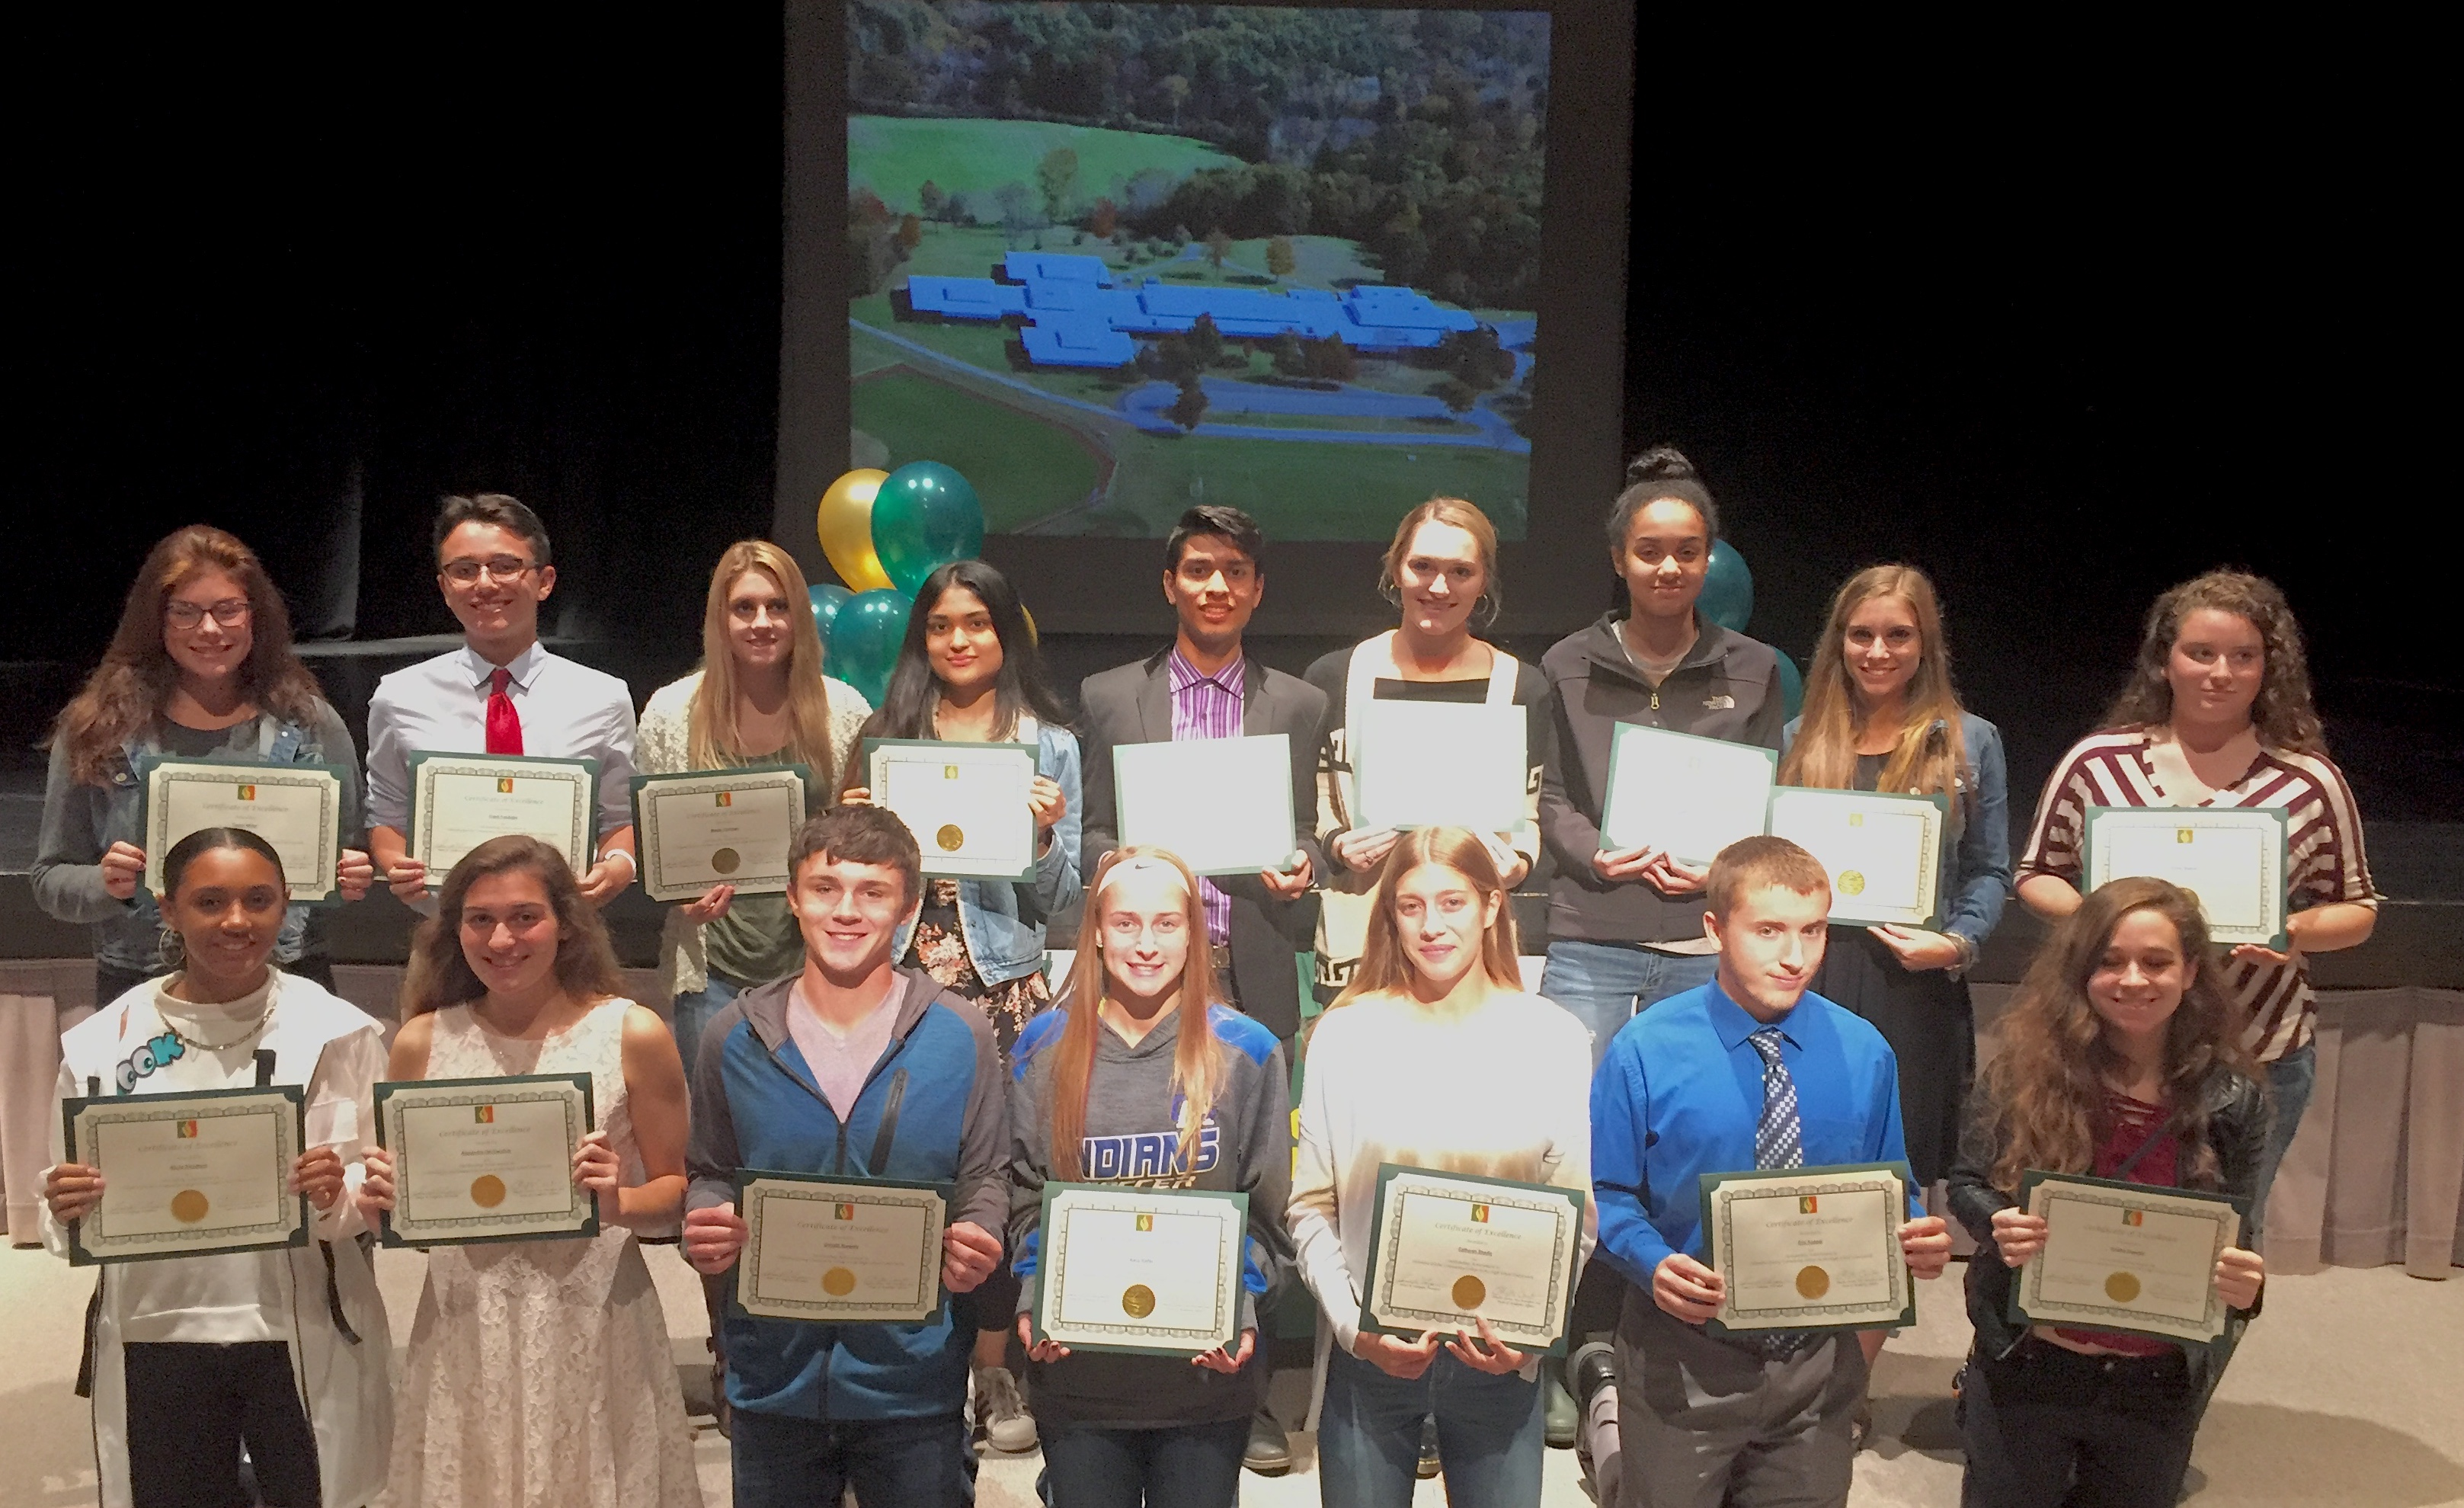 high school students pose with certificates of excellence